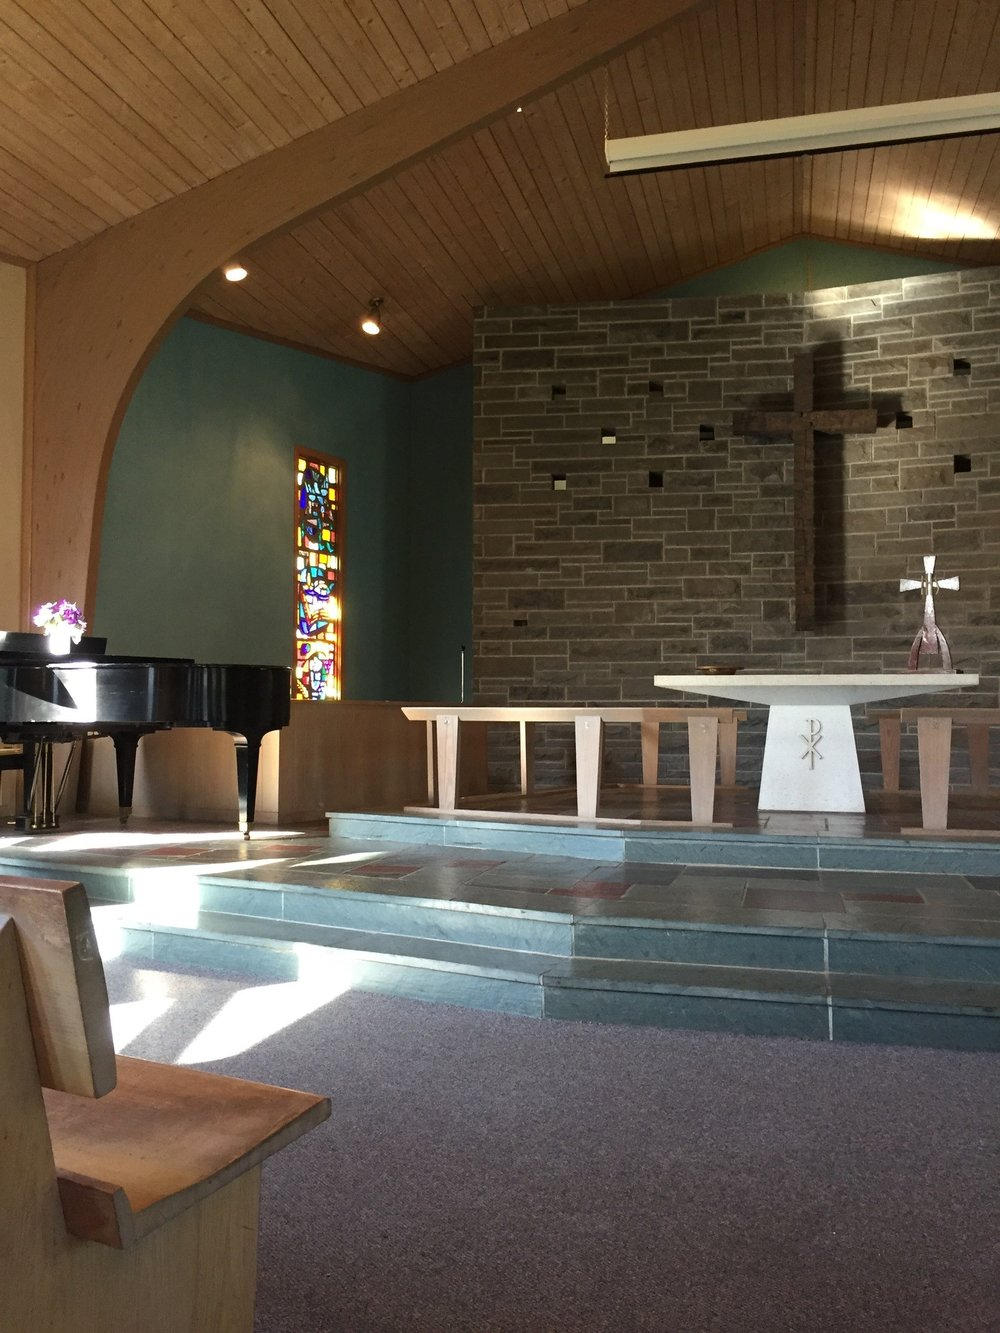 Our chapel seats 200 guests with 40 additional possible in our chapel extension room.